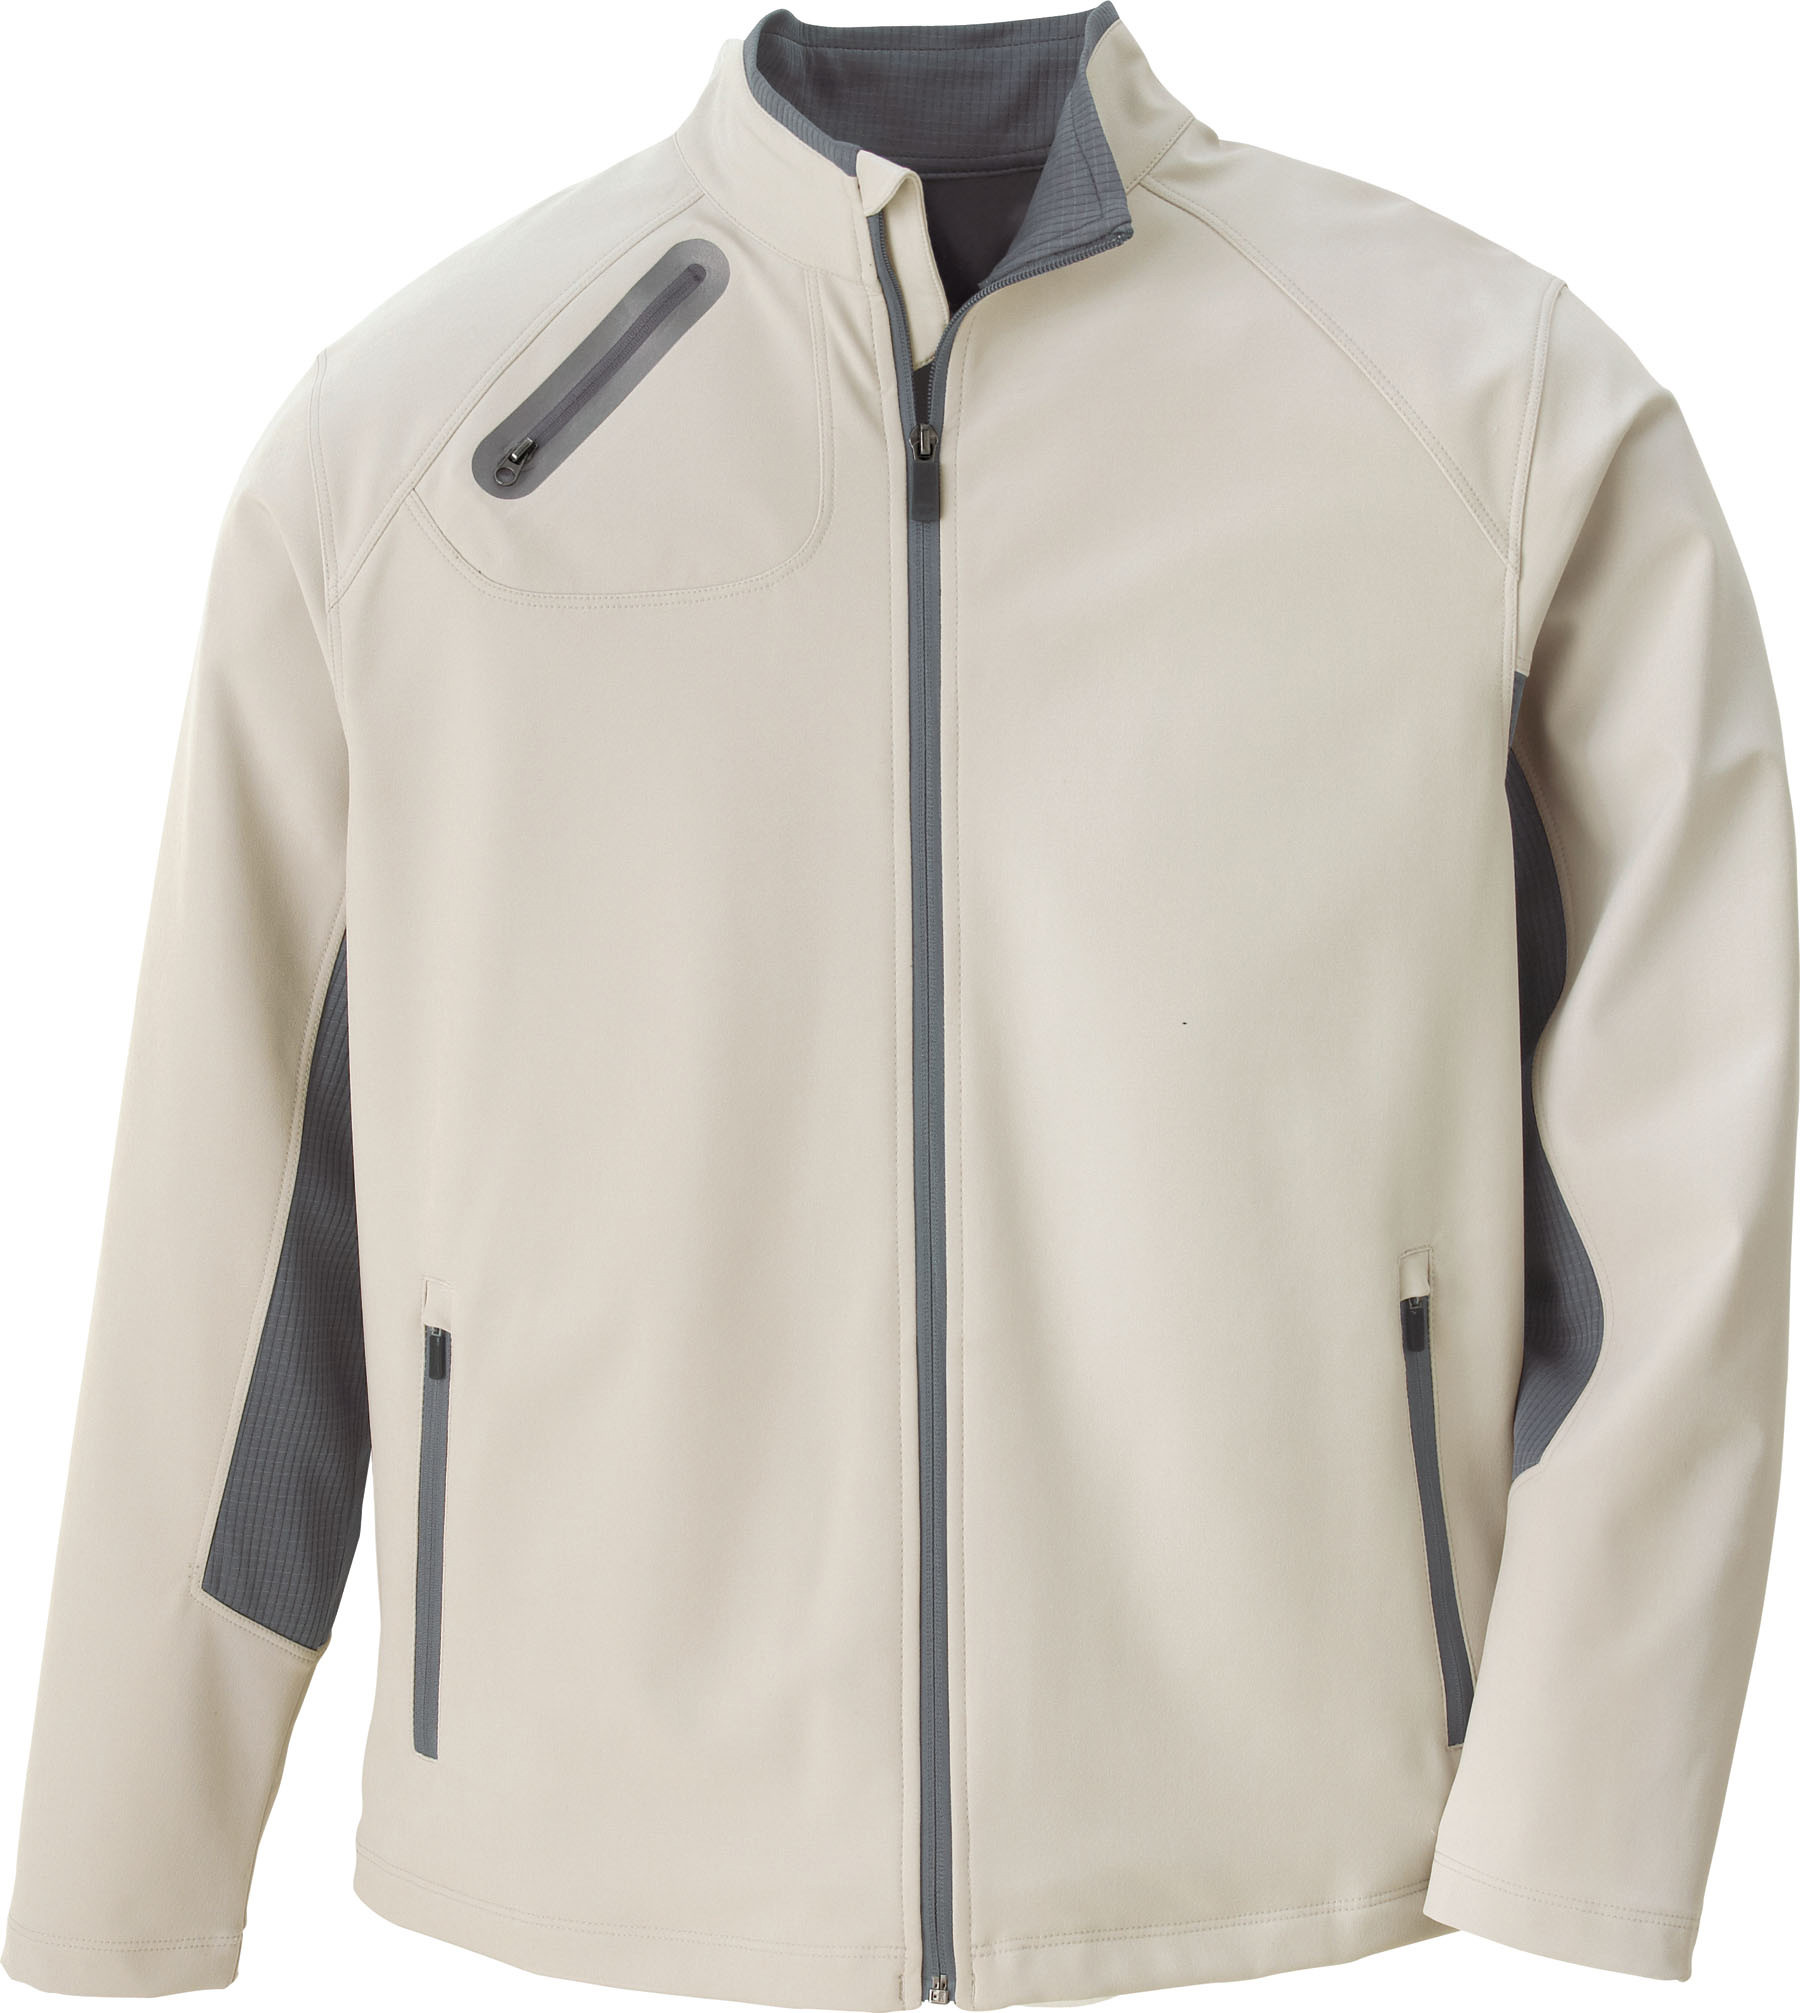 Ash City Lightweight 88621 - Men's 3-Layer Soft Shell ...